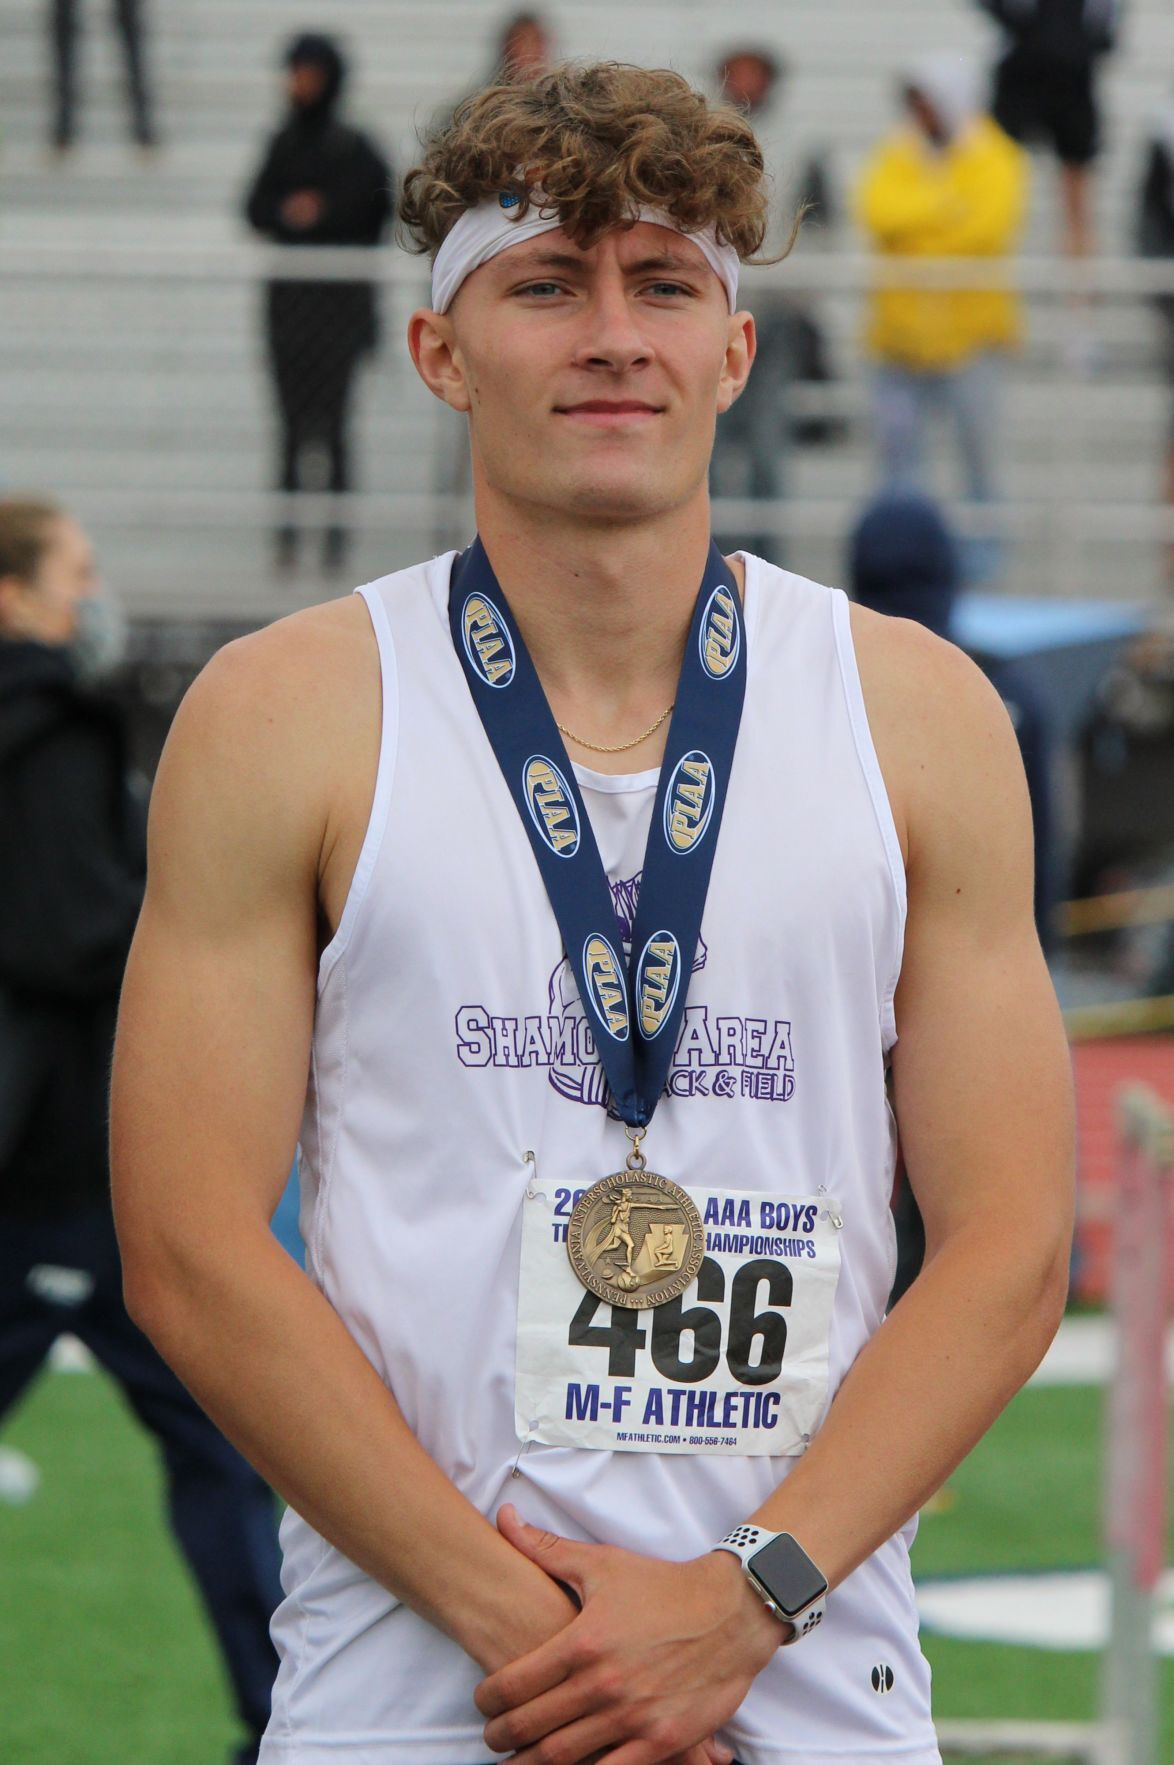 Delbaugh closes career with state medal